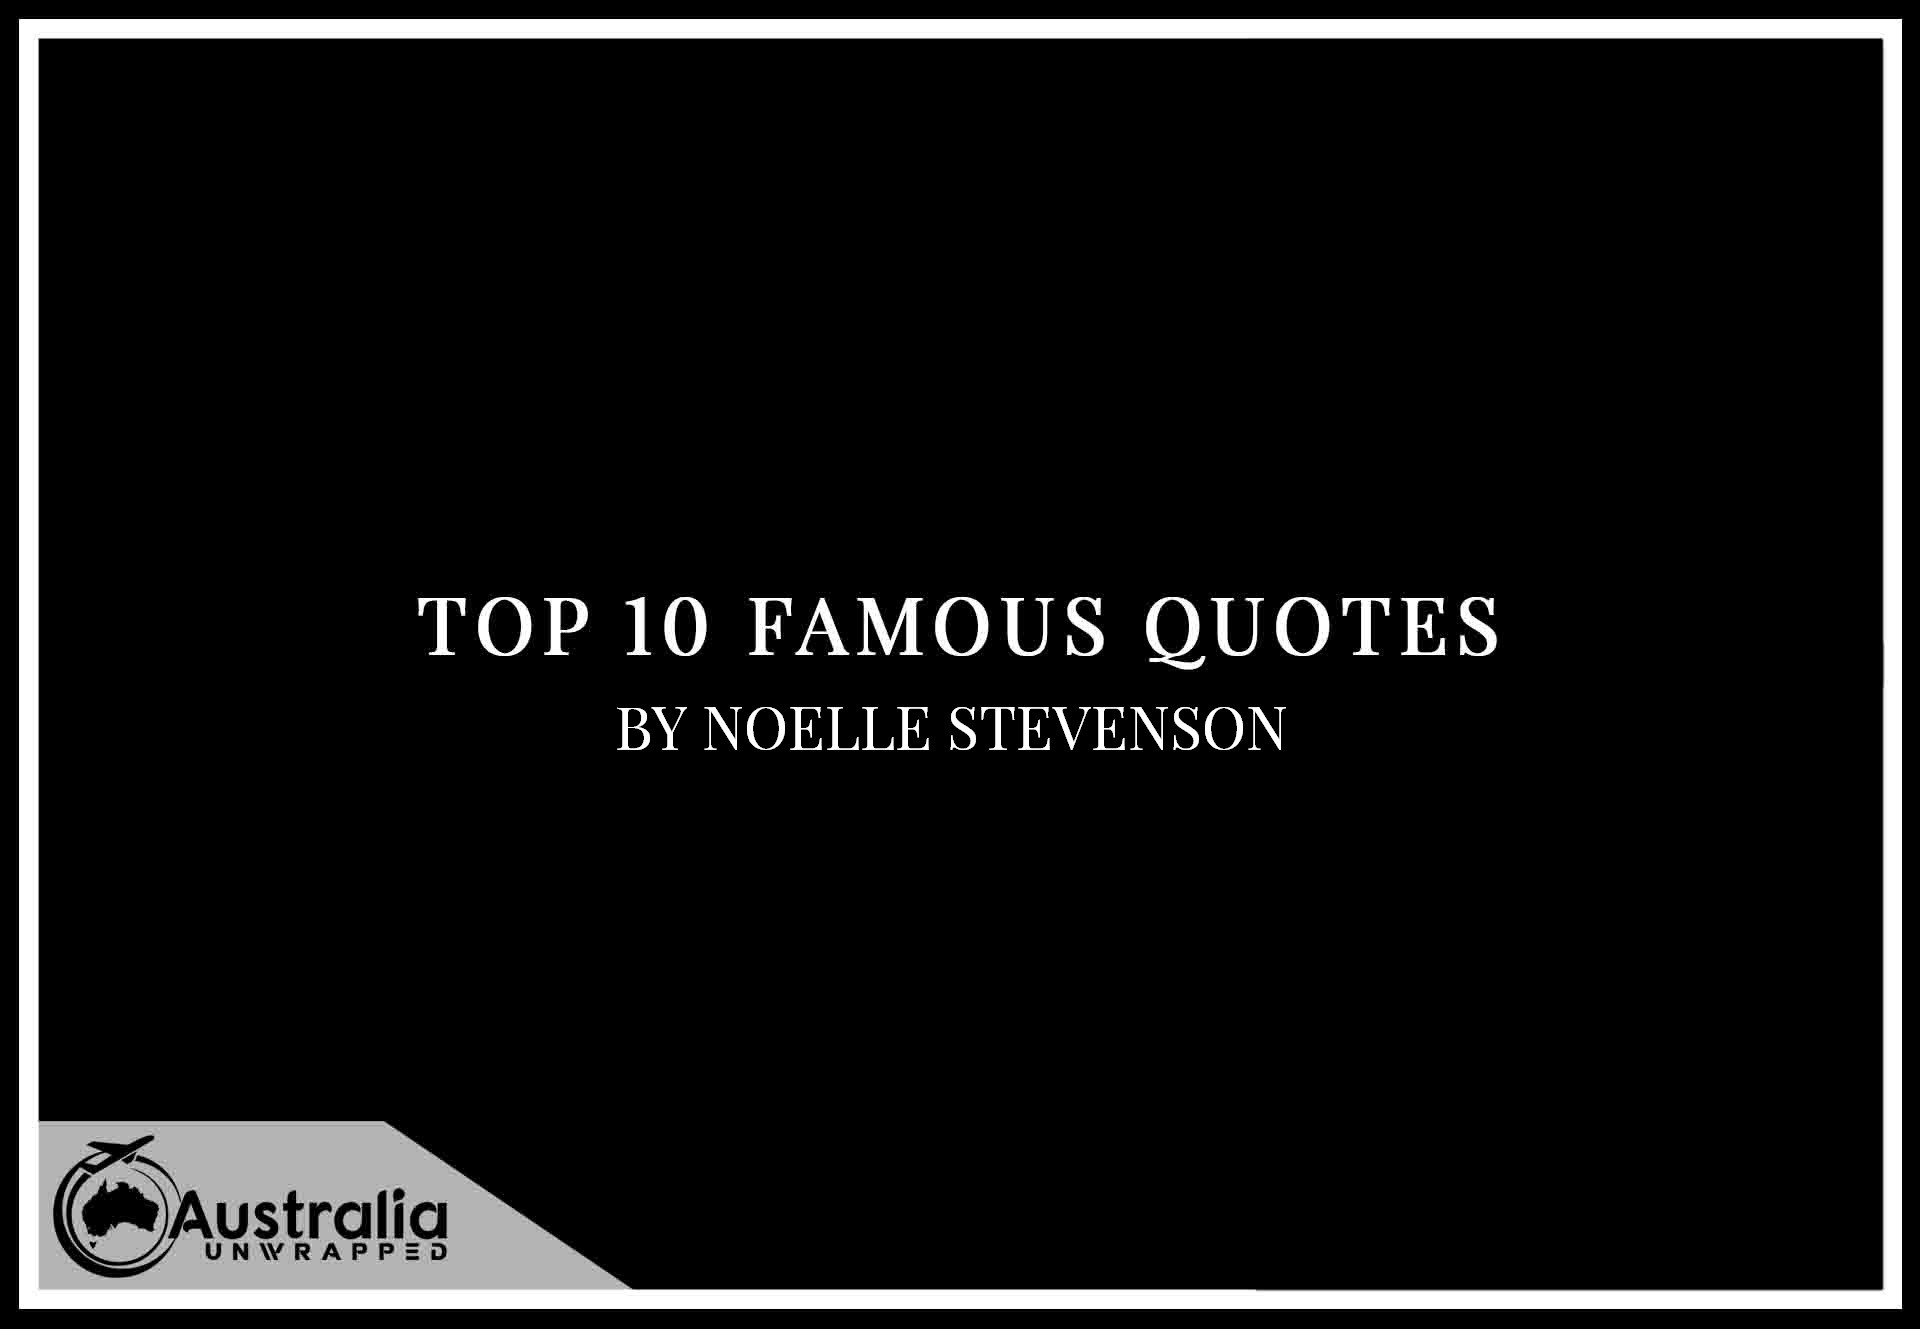 Top 10 Famous Quotes by Author Noelle Stevenson